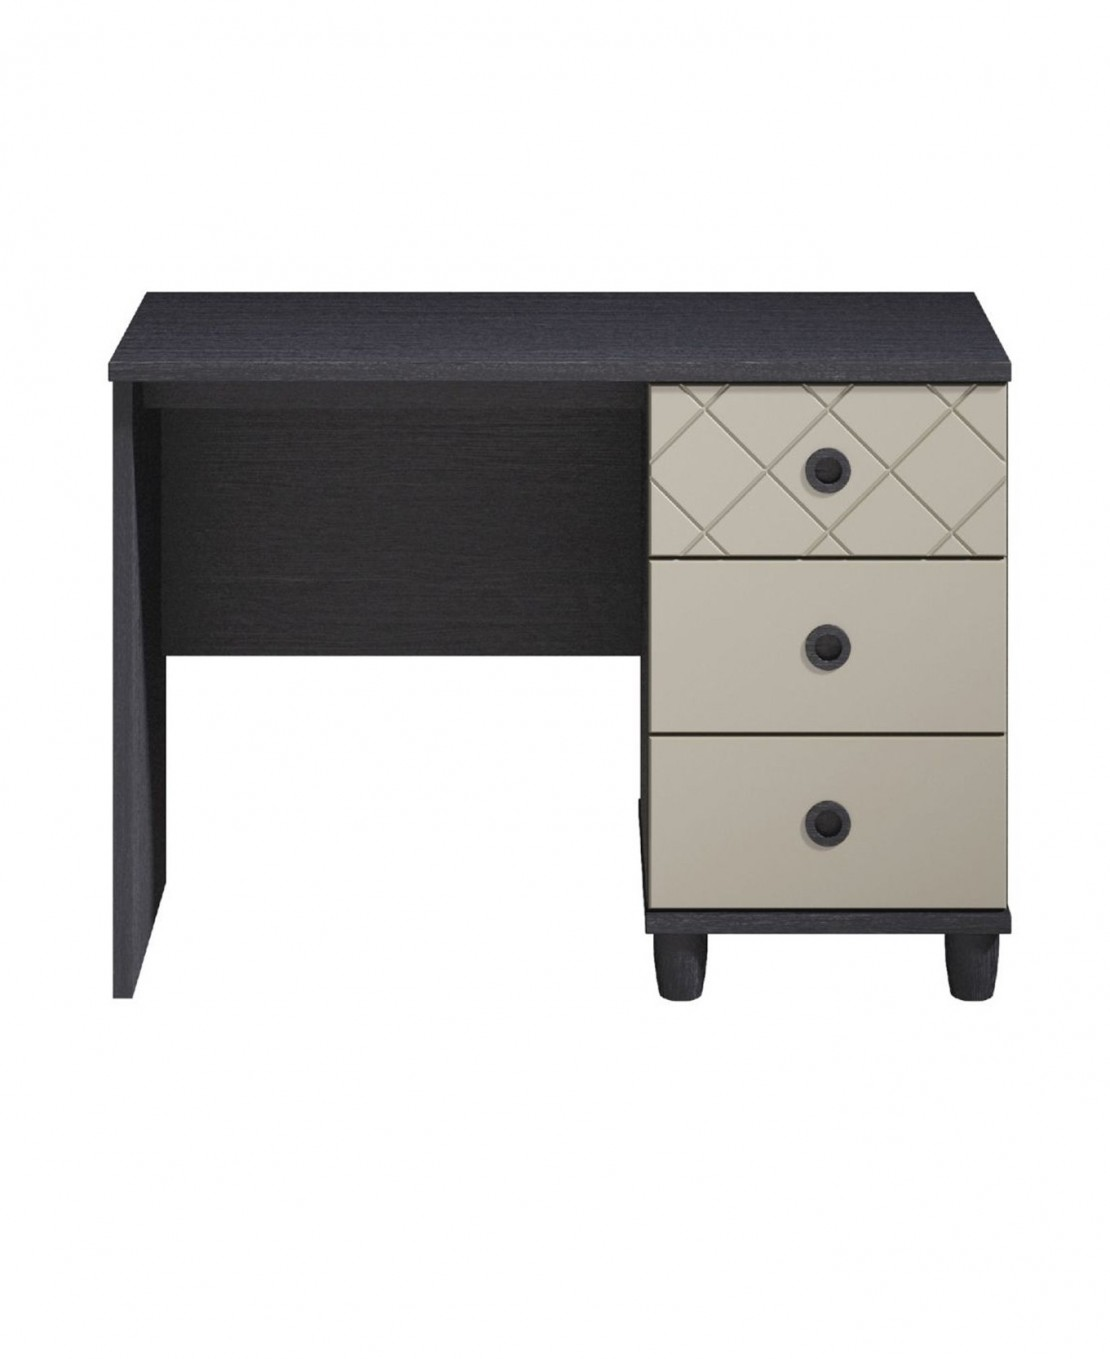 /_images/product-photos/kt-furniture-geo-single-ped-dressing-table-matt-grey-with-black-oak-carcase-a.jpg